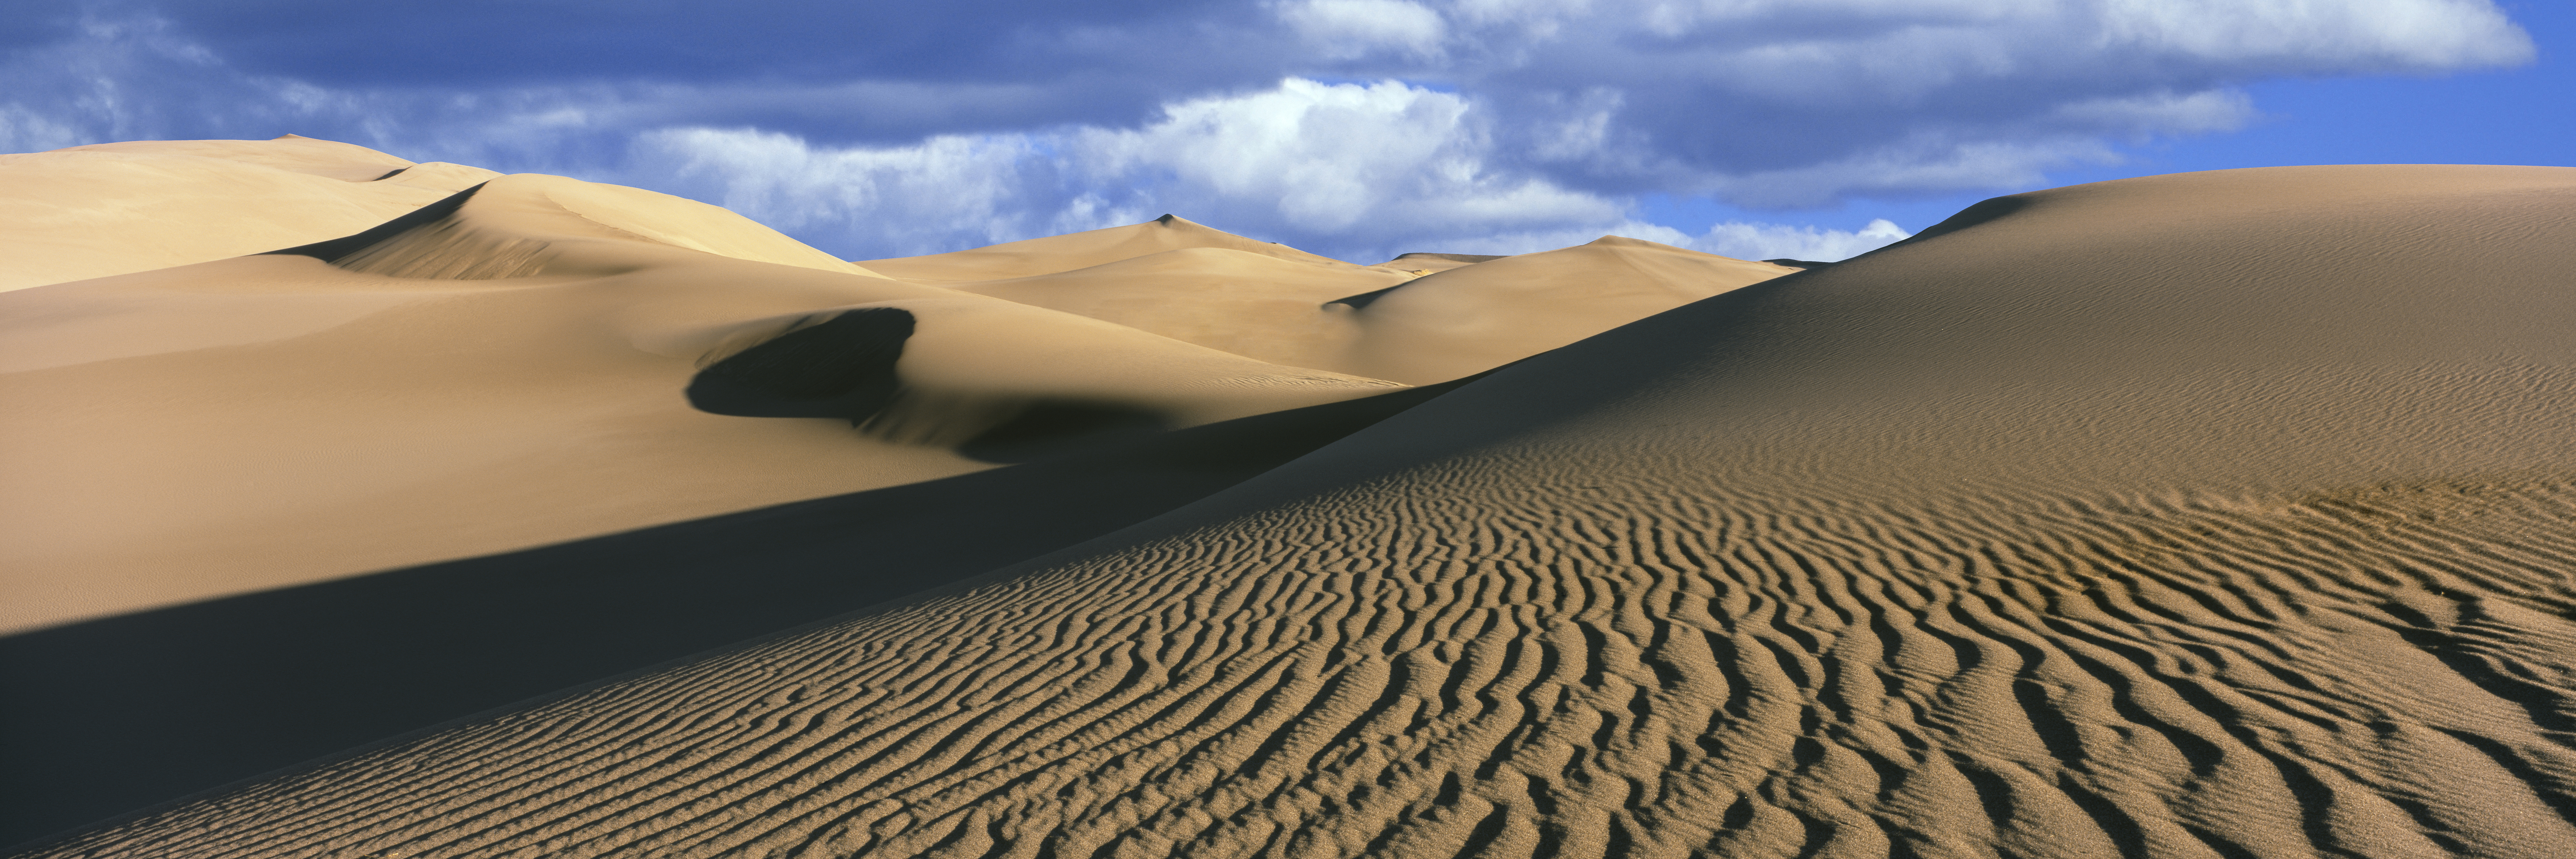 Sand dunes in a desert, Great Sand Dunes National Park, Colorado, USA